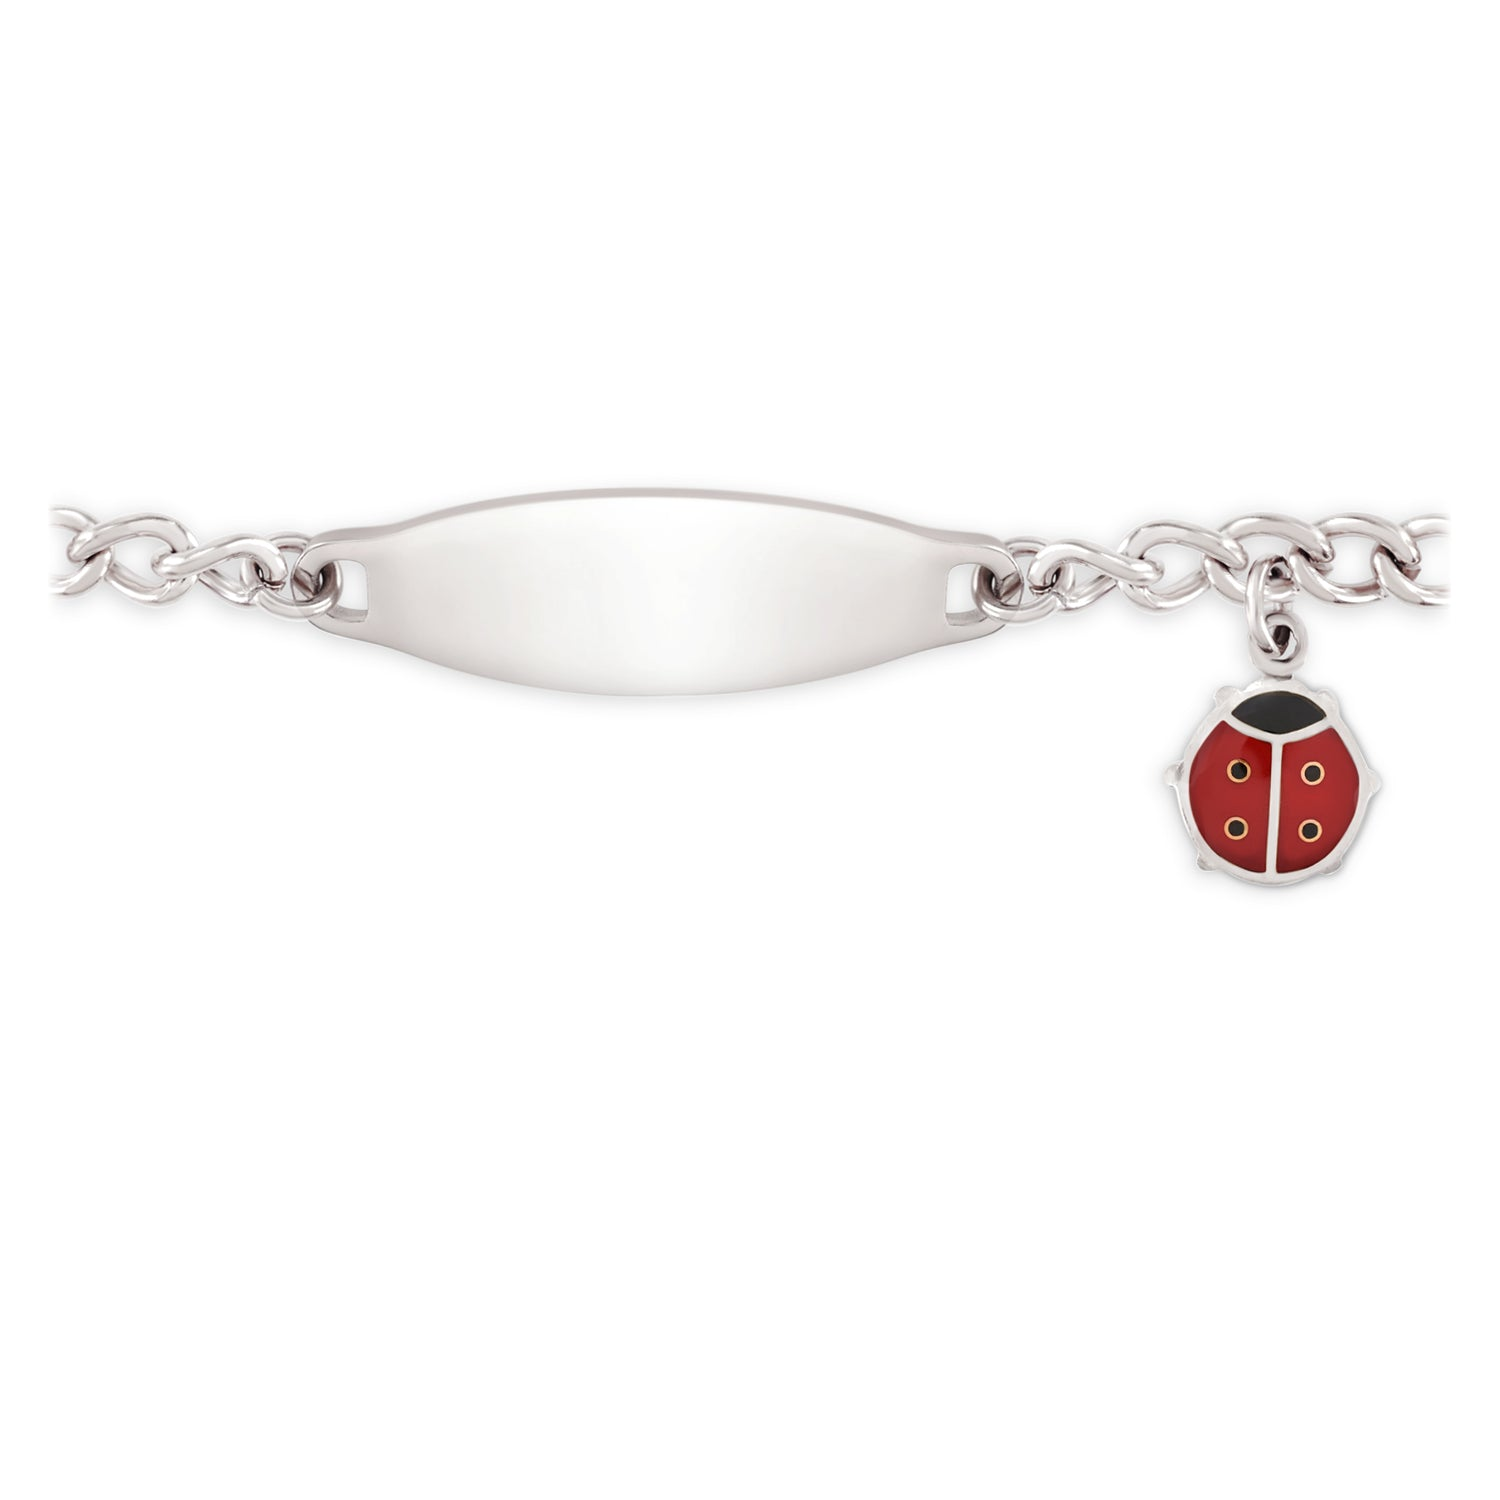 af31a927d Children's My First ID Bracelet, Polished Plaque And Lady Bug Charm ...